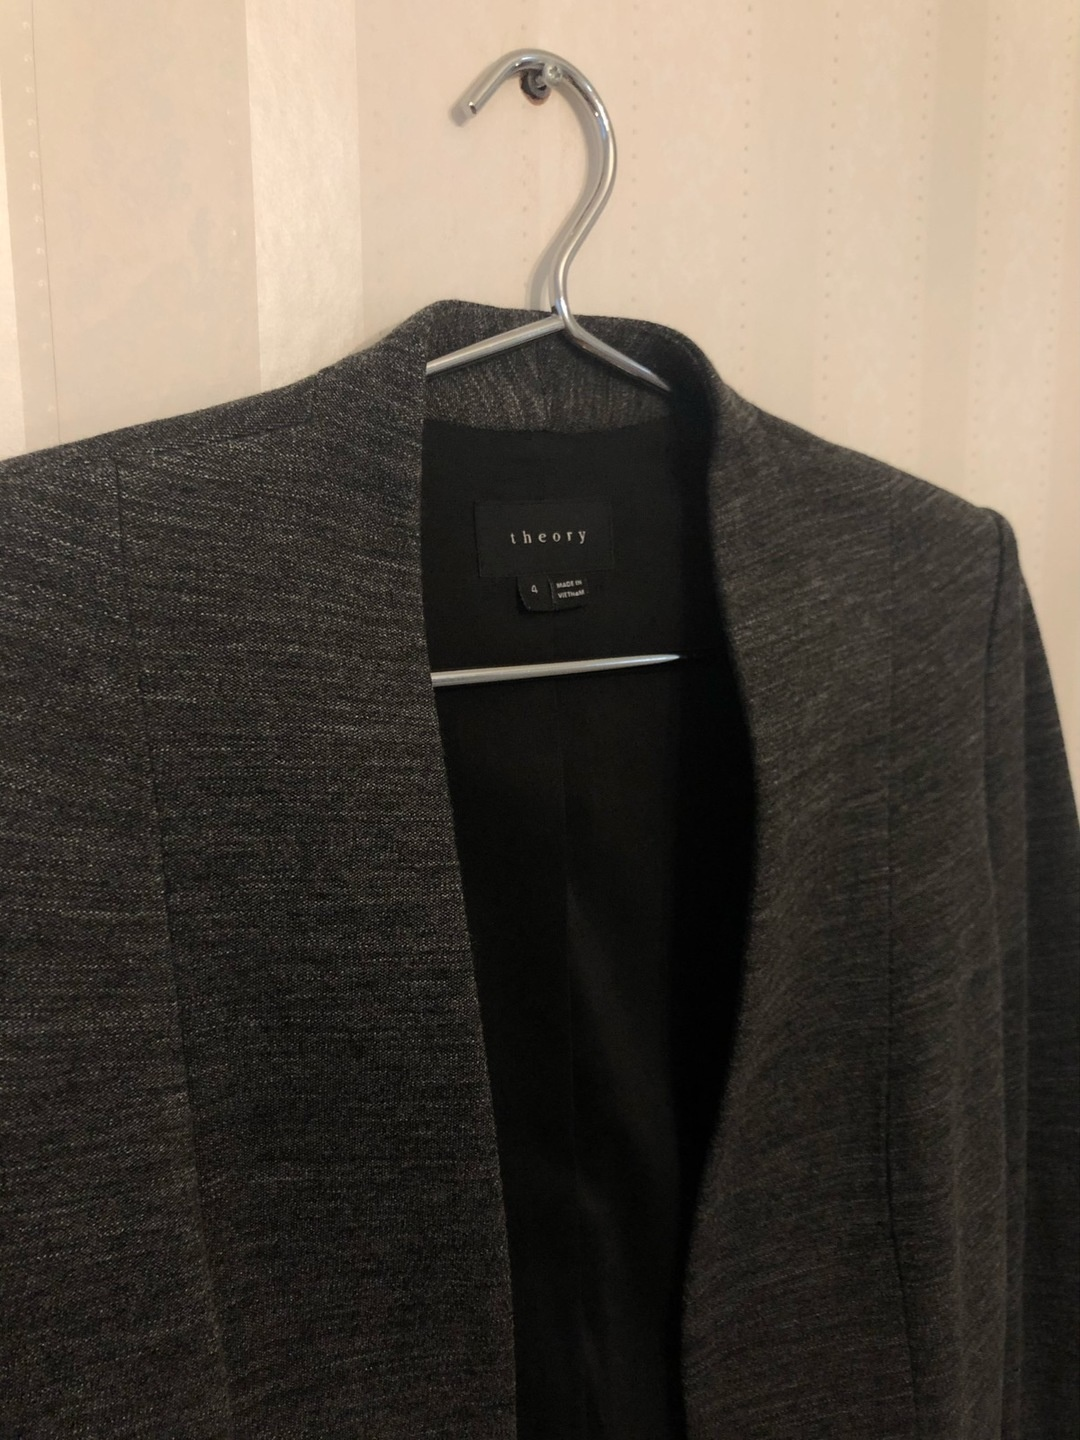 Women's blazers & suits - THEORY photo 3